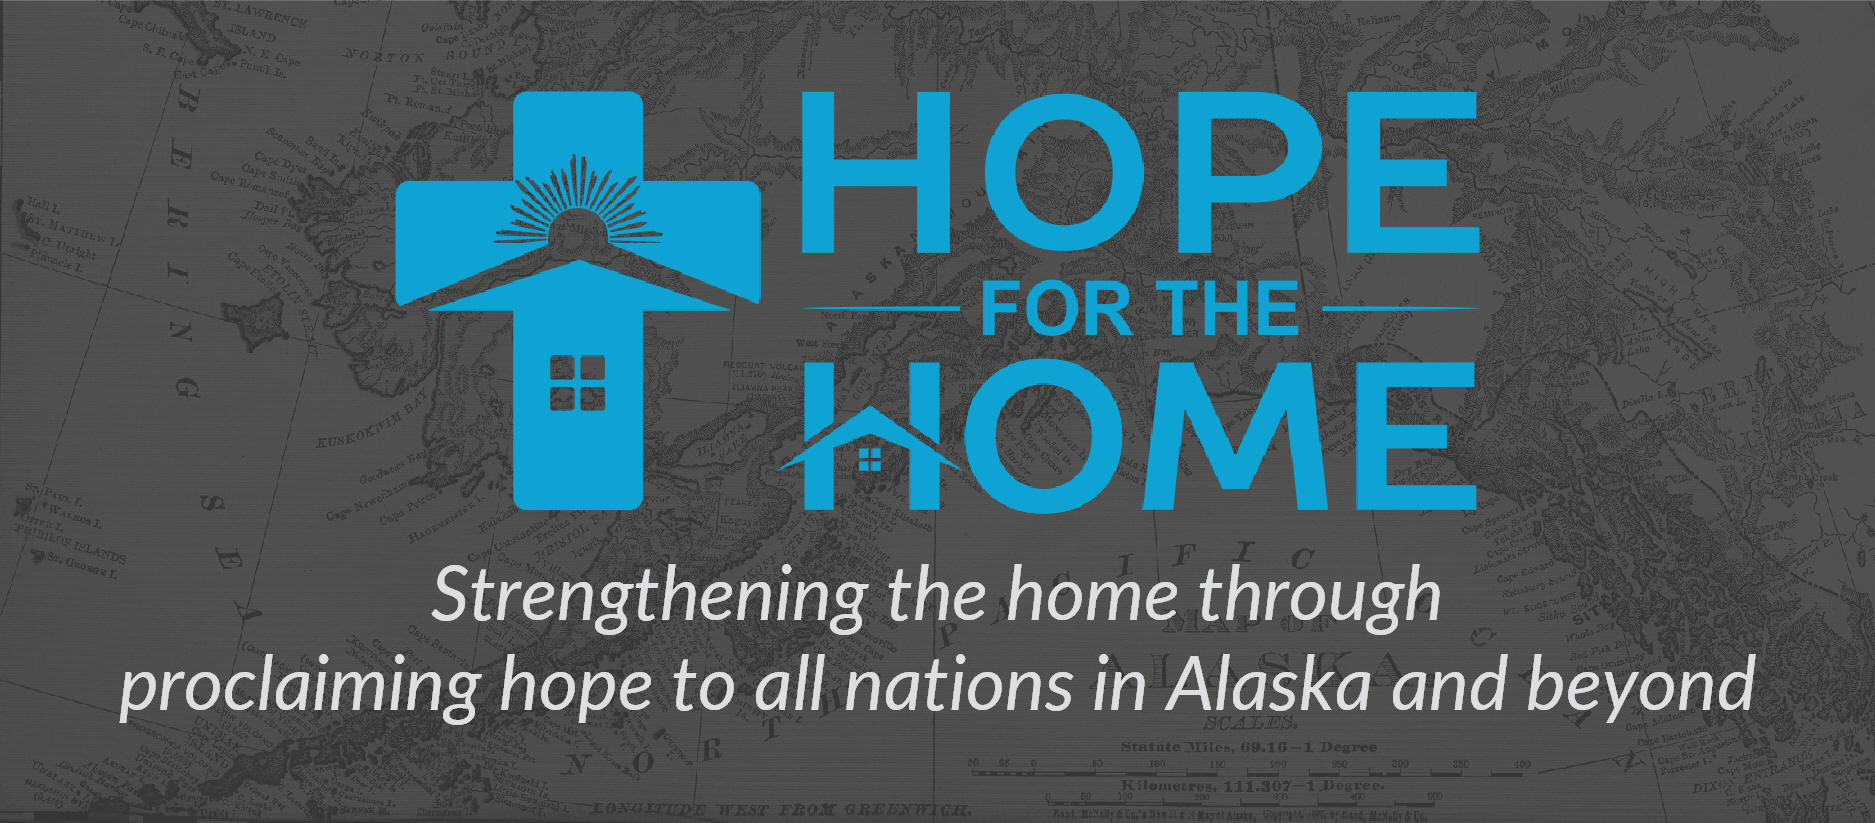 Hope For The Home | Strengthening the home through proclaiming hope to all nations in Alaska and beyond